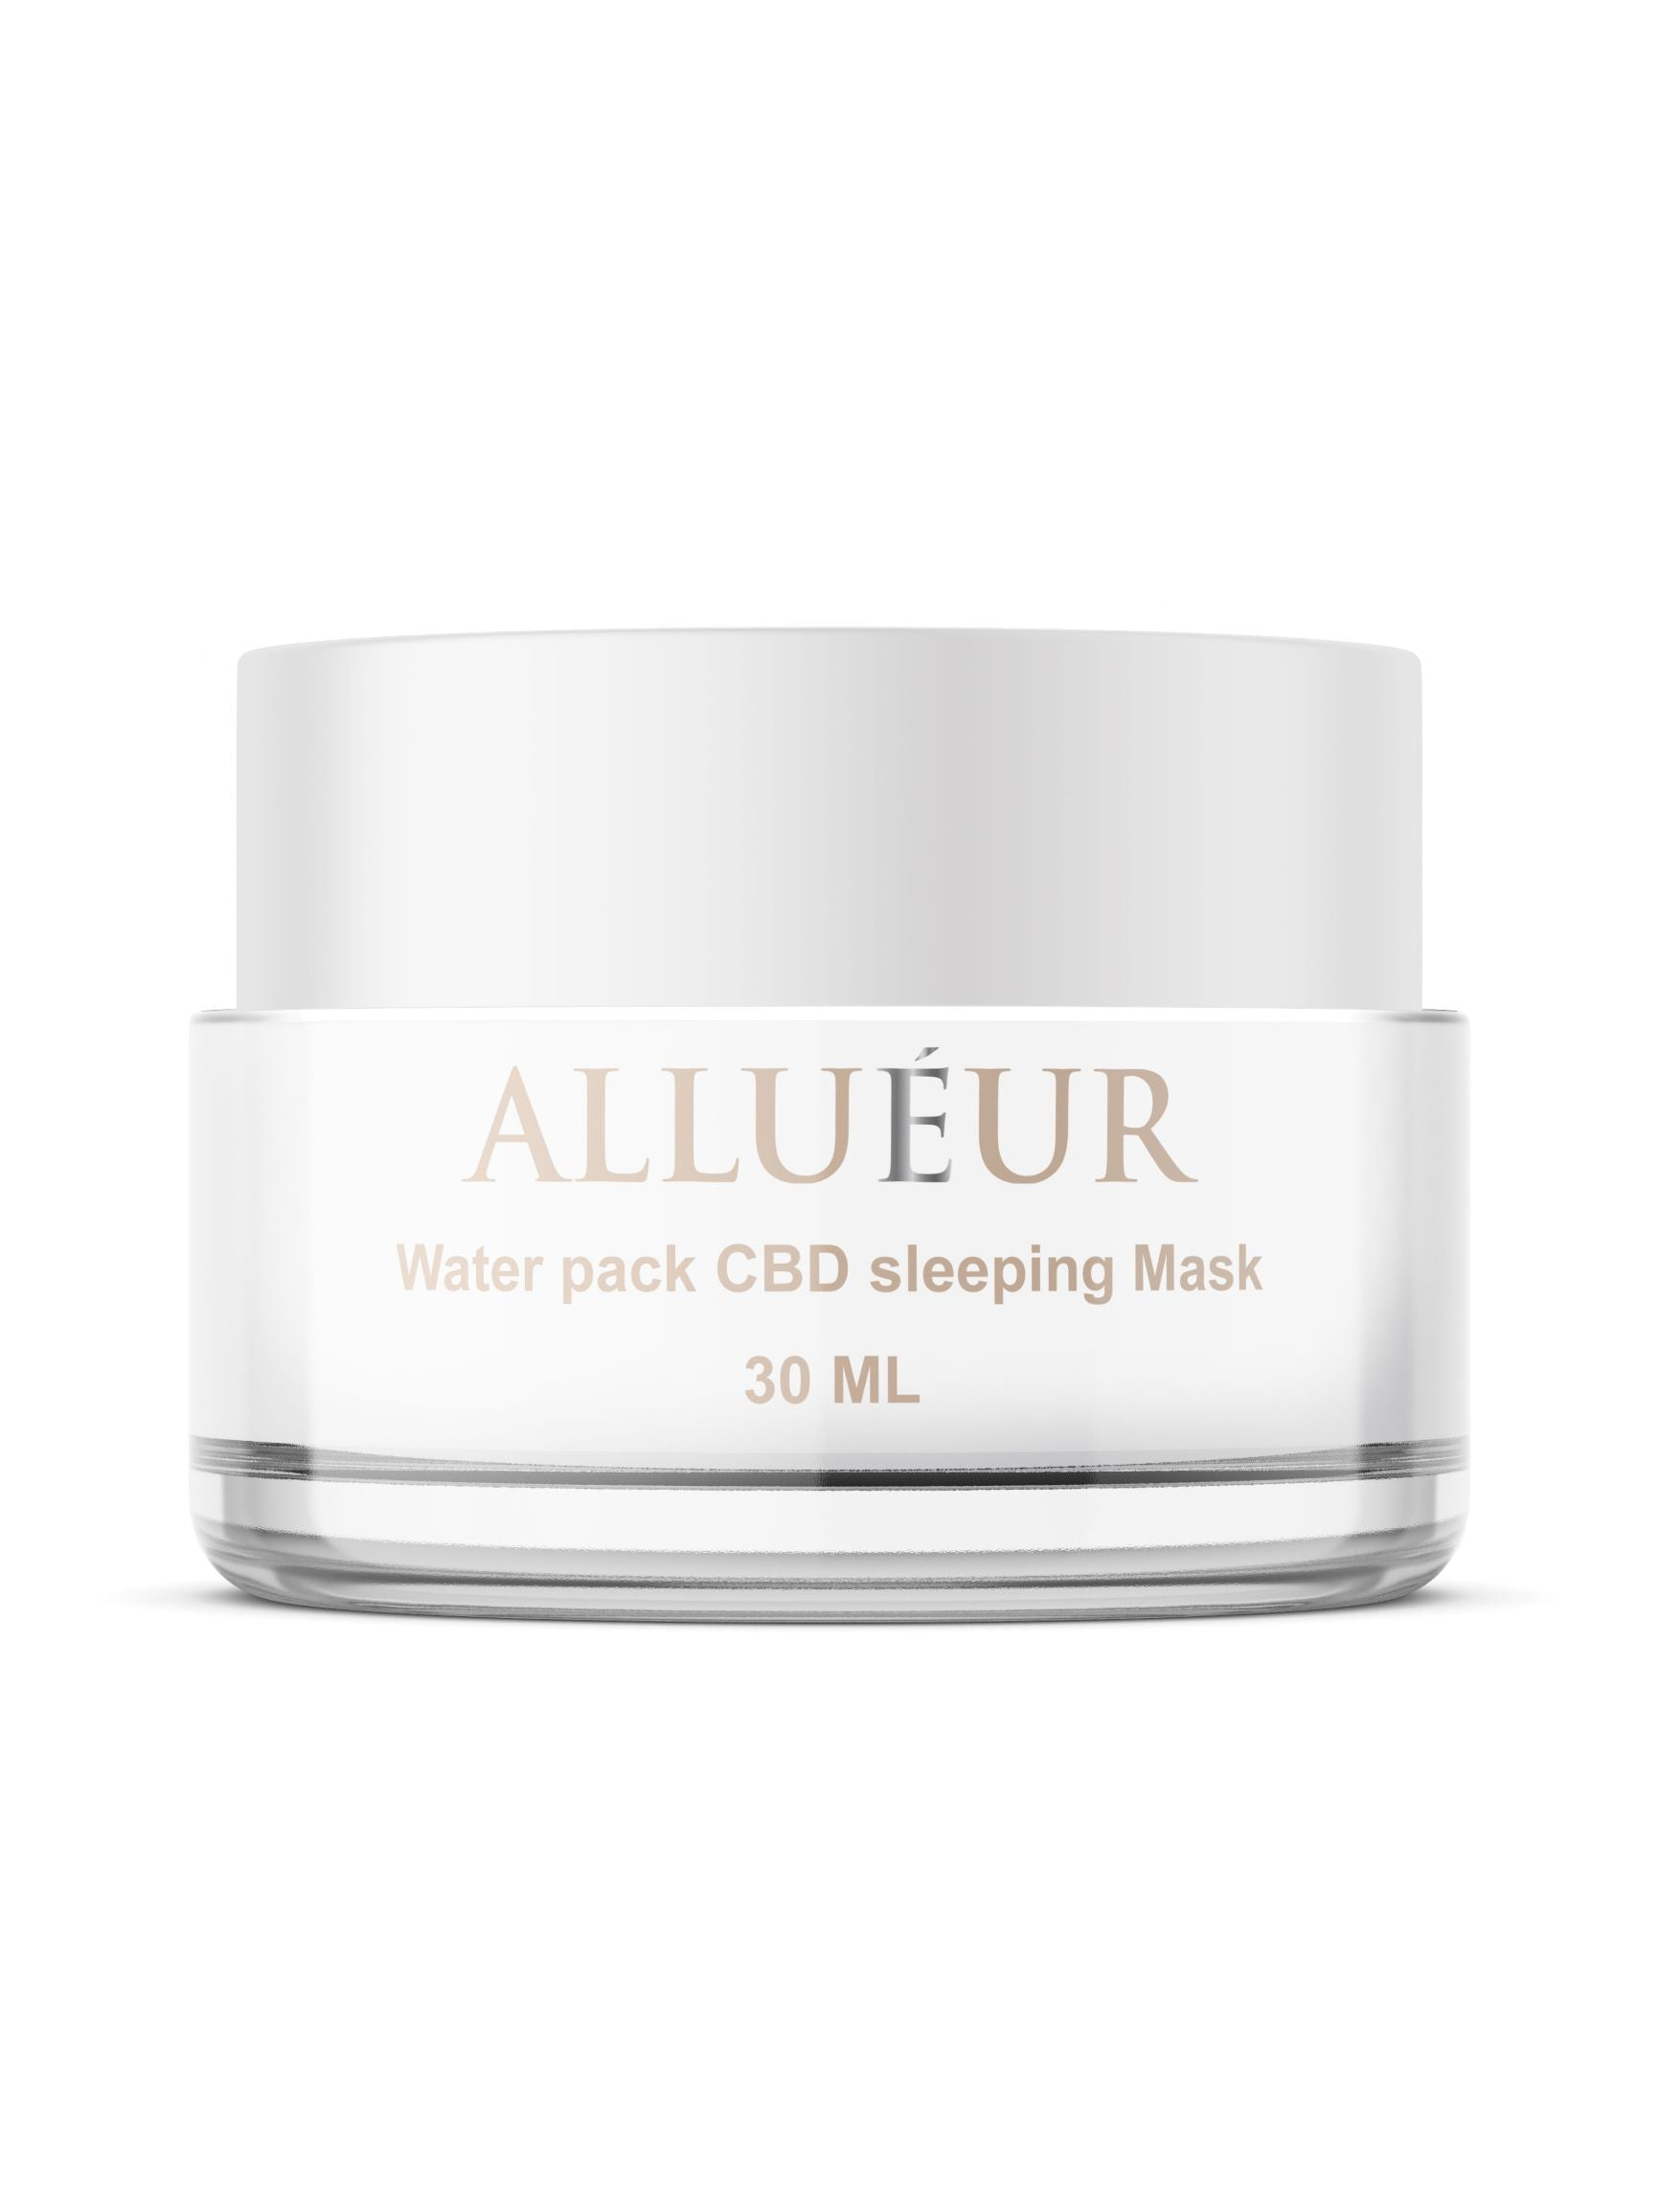 Allueur Hemp and CBD Infused Skincare Products